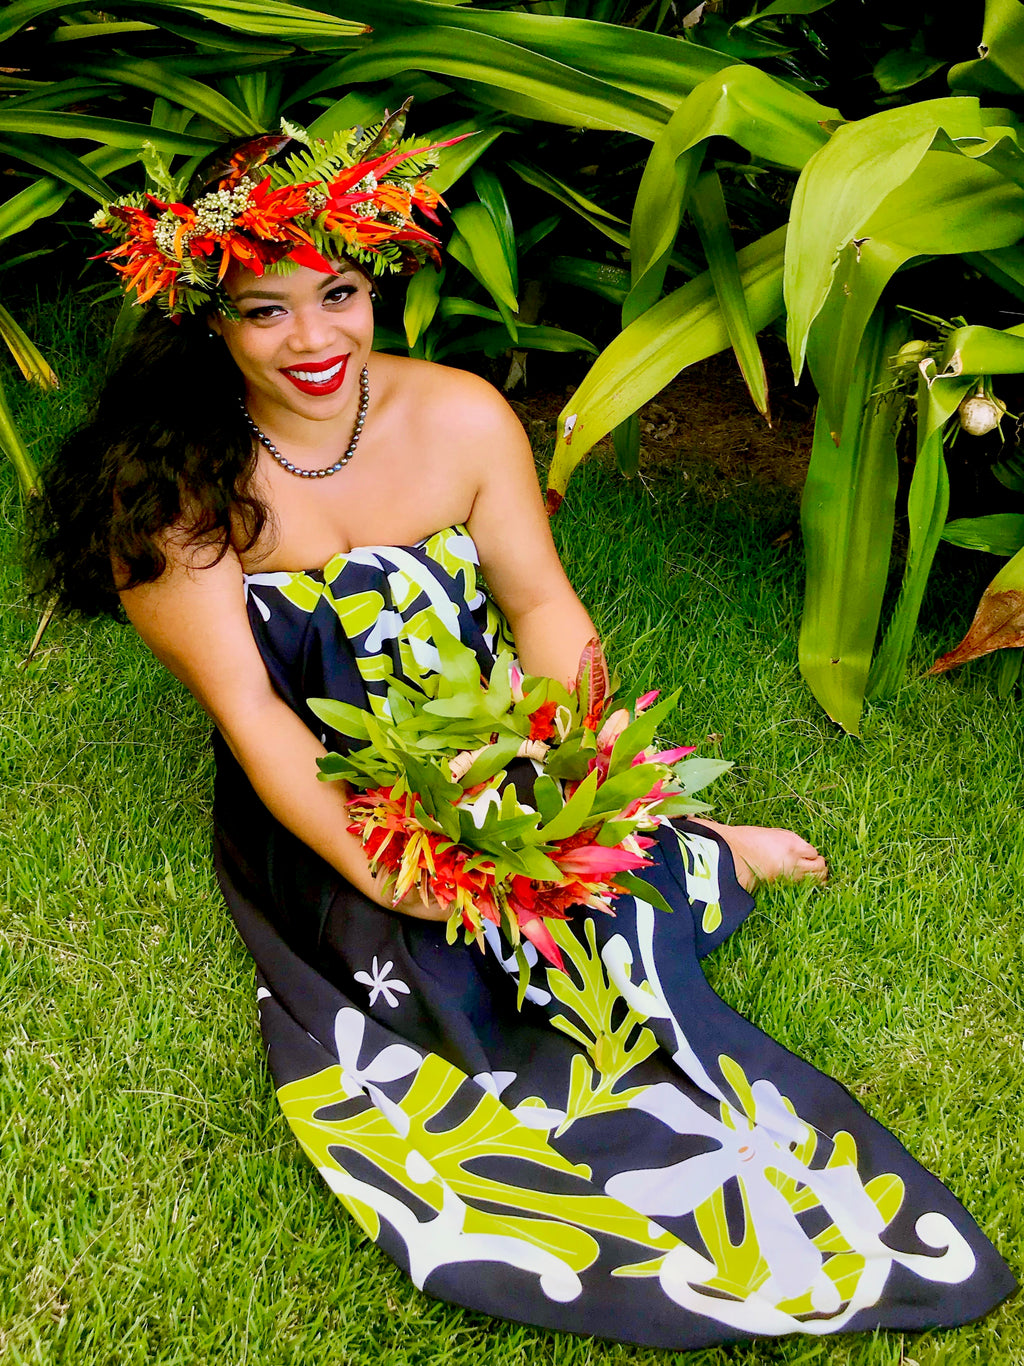 Hawaiian pareo, Tahitian, Tahitian dance, Hawaiian sarong, Hawaii, tropical , Maui, Hana Maui, beach wear, cover up, beach essentials, black clothing, black pareo, black sarong, wedding, beach style wedding, white bikini wrap, Polynesian, Polynesia, Polynesian style, Tropical style, Aloha style